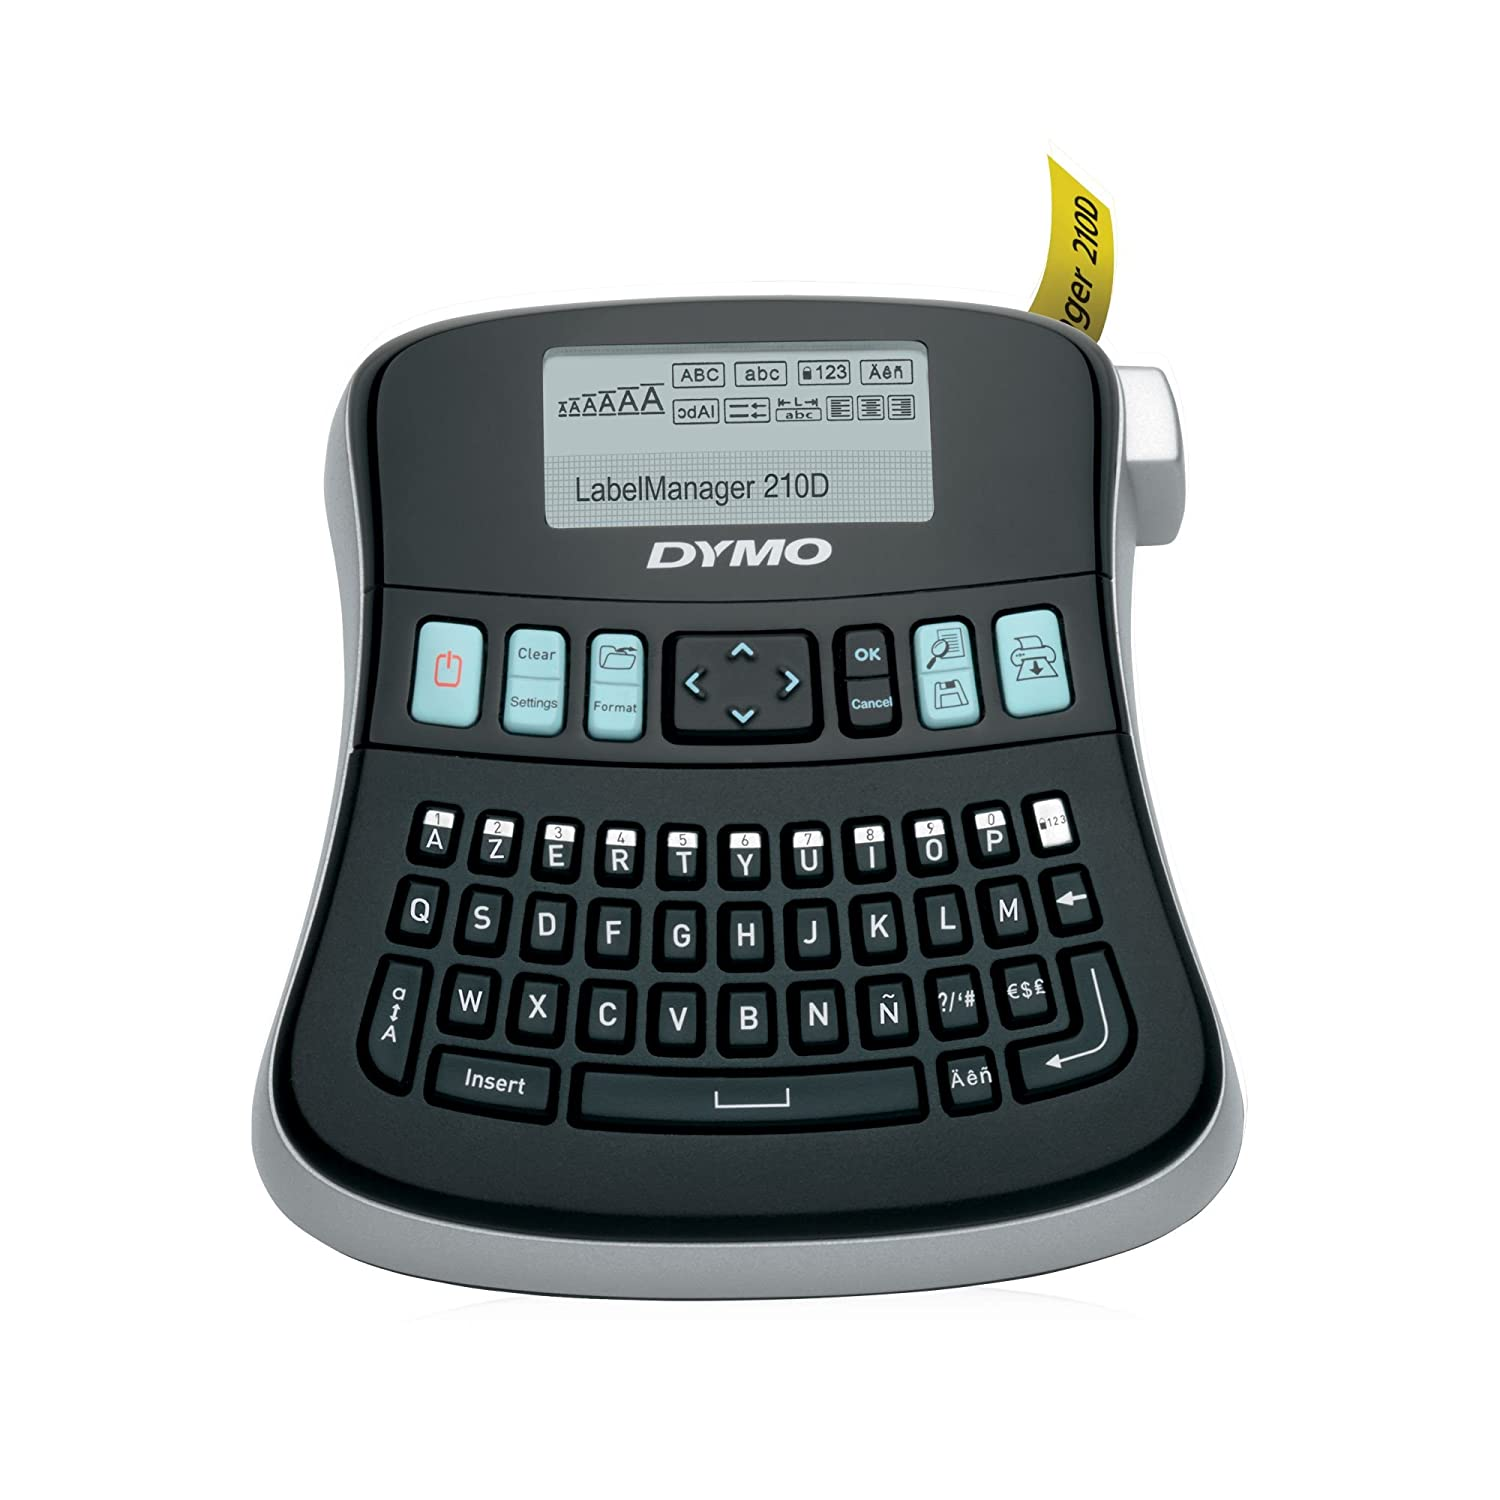 Color printing label maker - Amazon Com Dymo Labelmanager 210d All Purpose Label Maker With Large Display And Qwerty Keyboard 1738345 Printer Labels Electronics